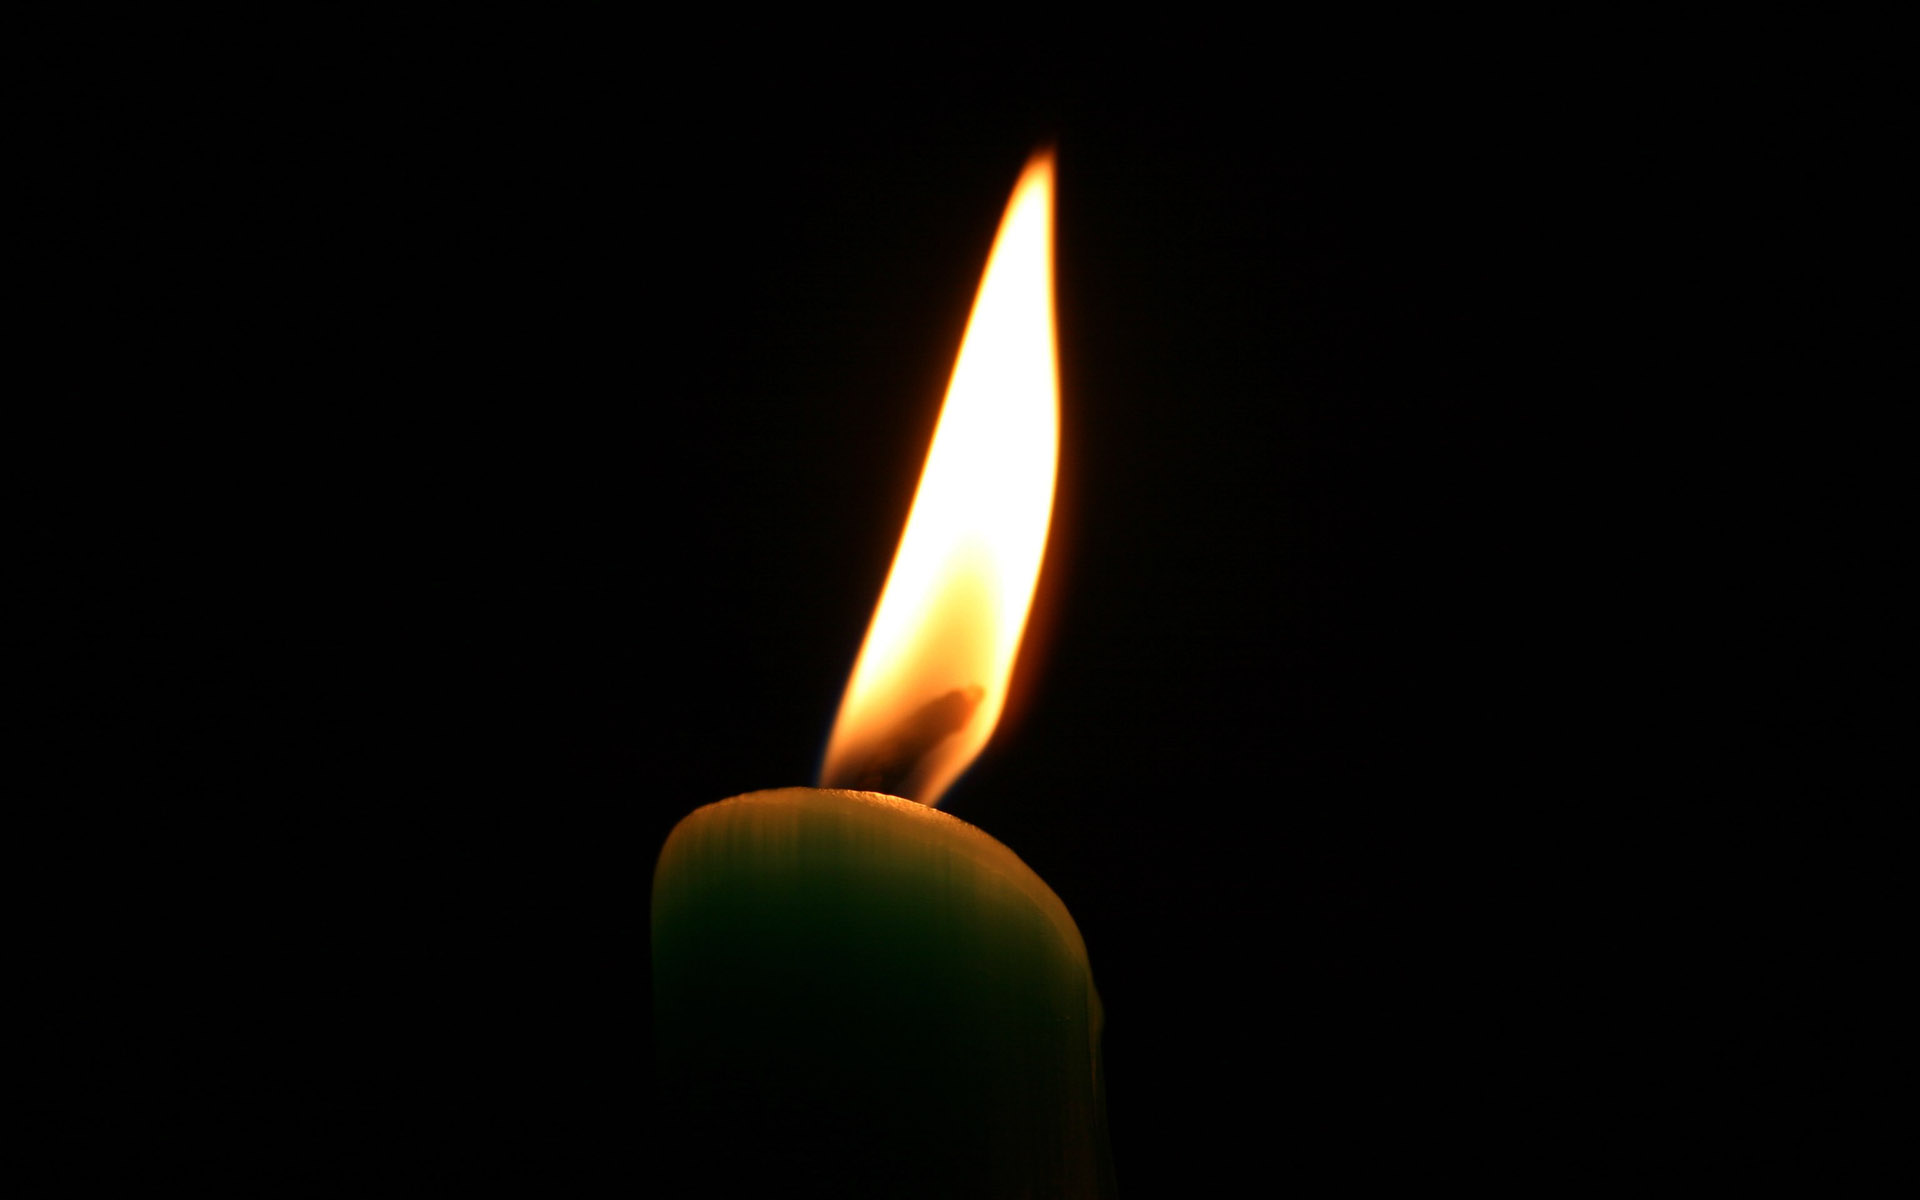 Candle wallpaper 8100